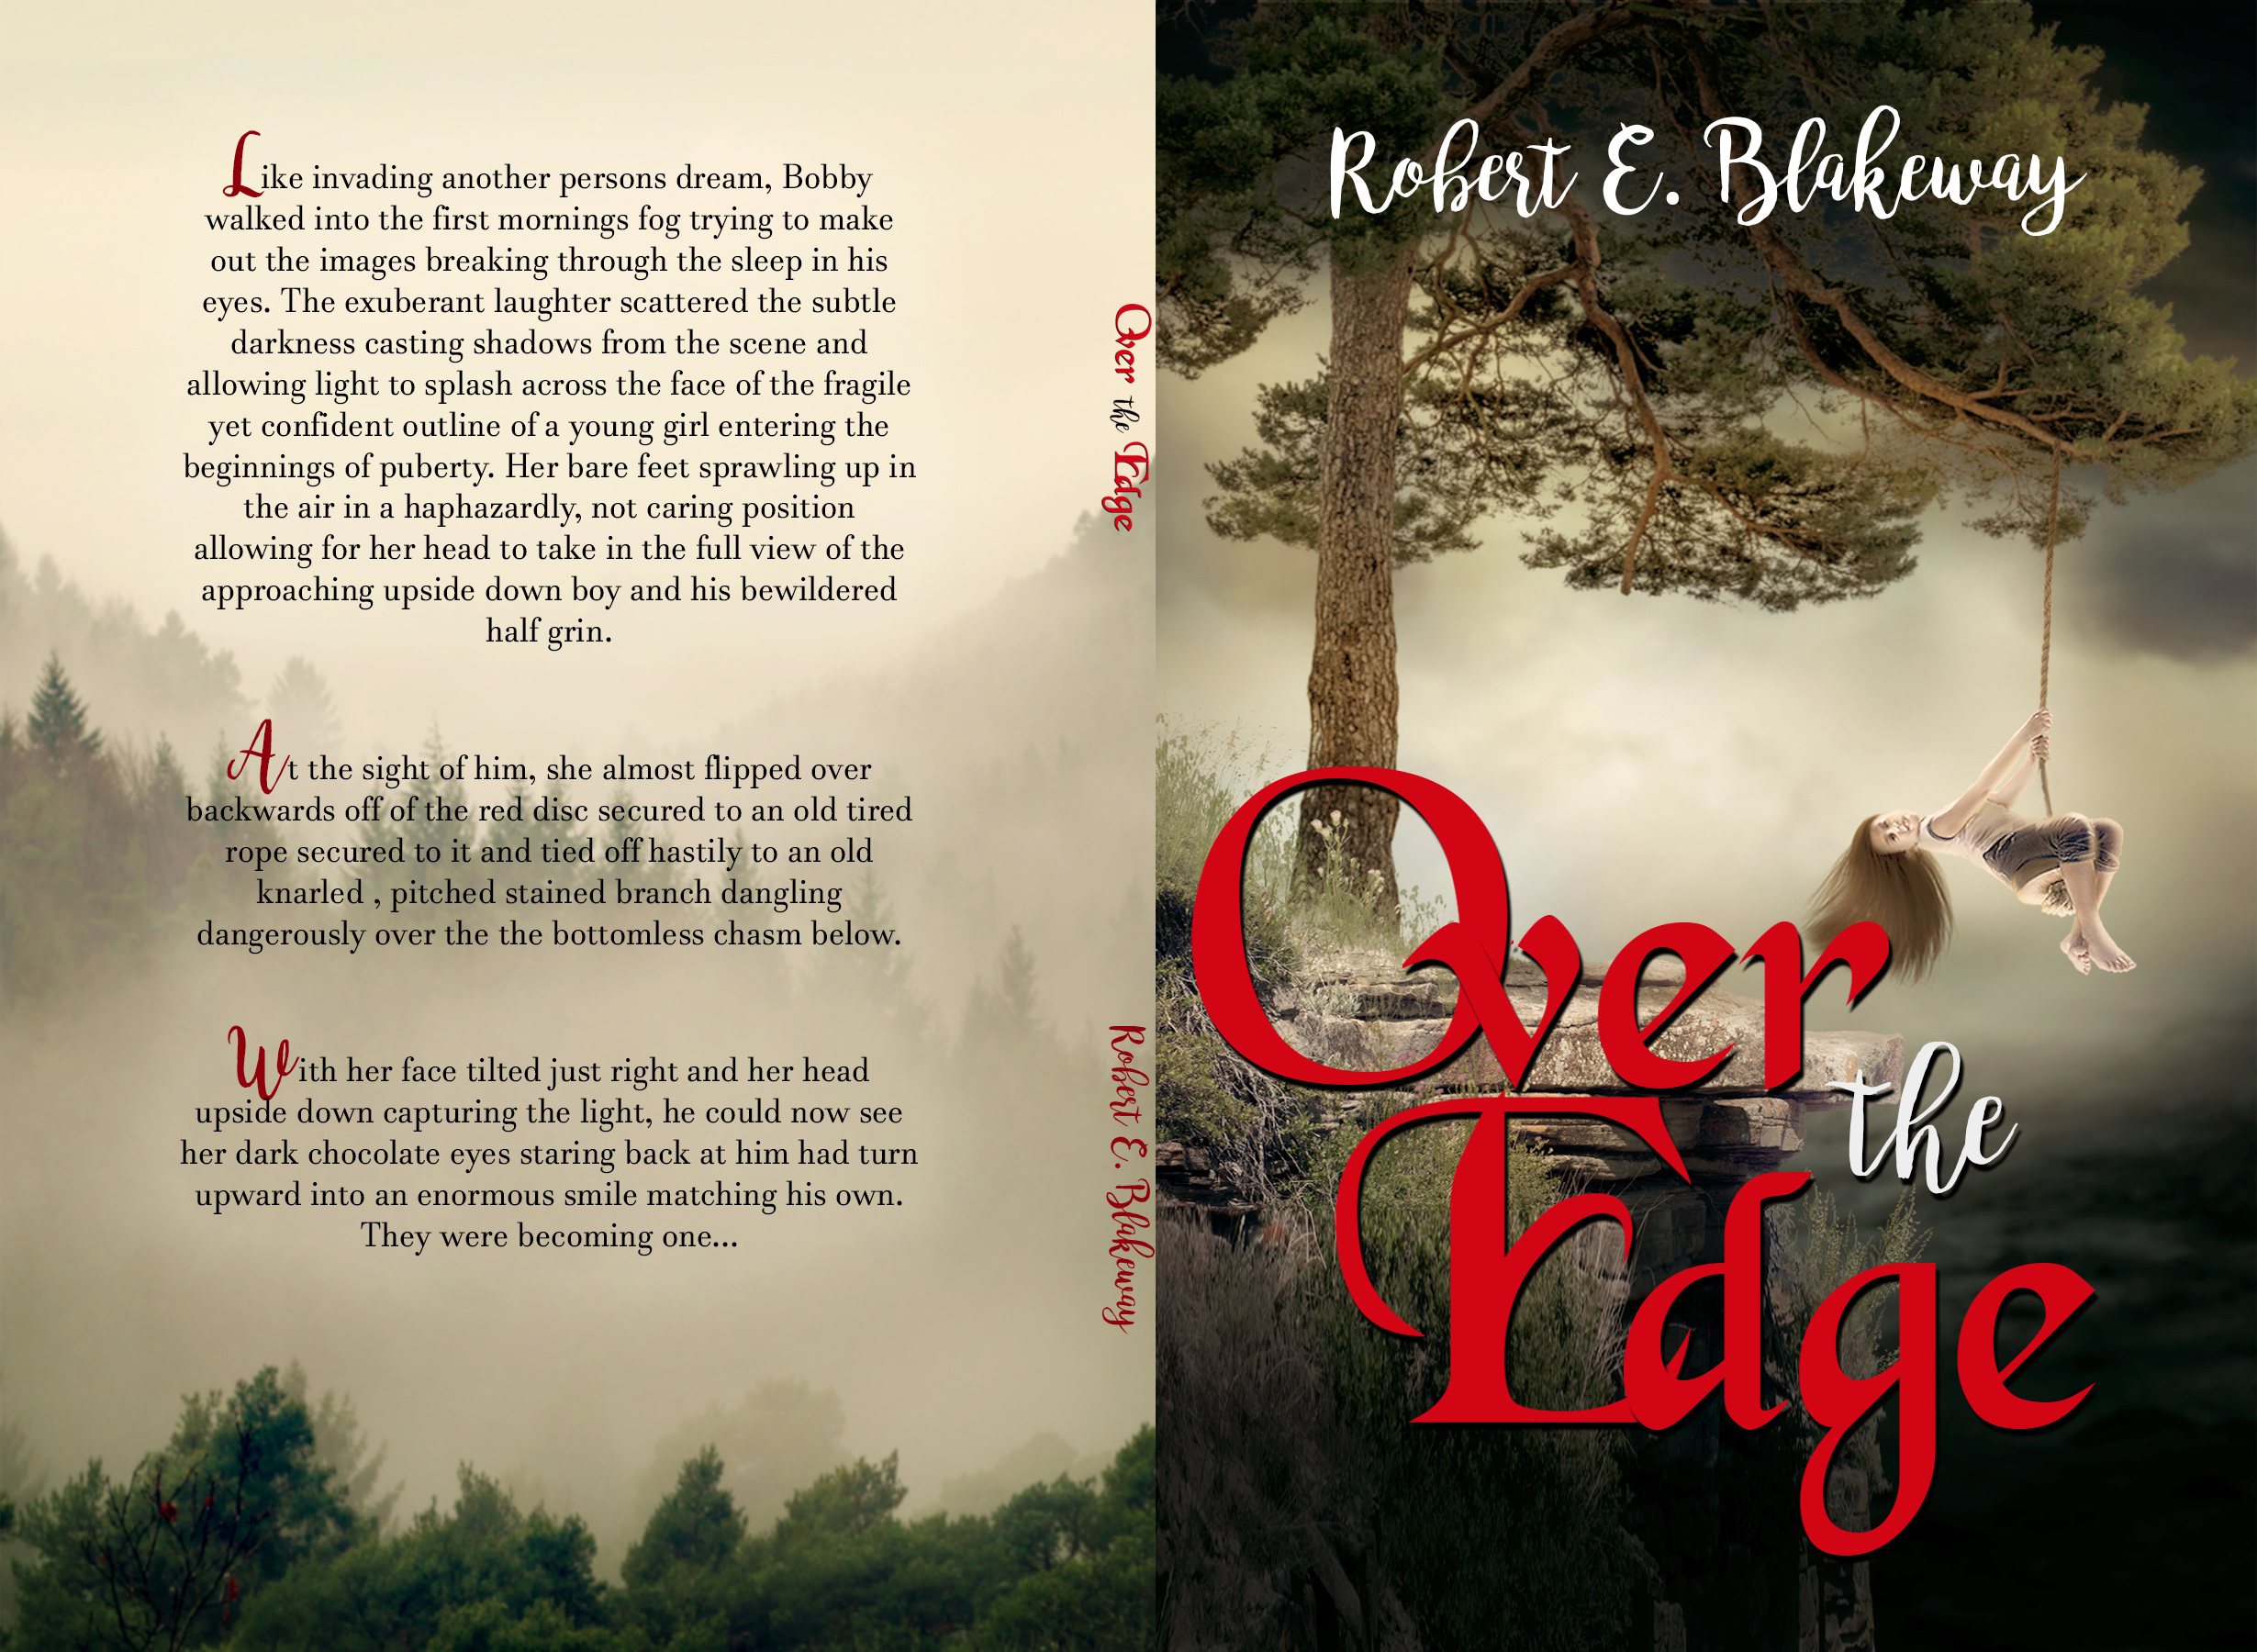 Over the Edge - Robert Blakeway Cover Wrap